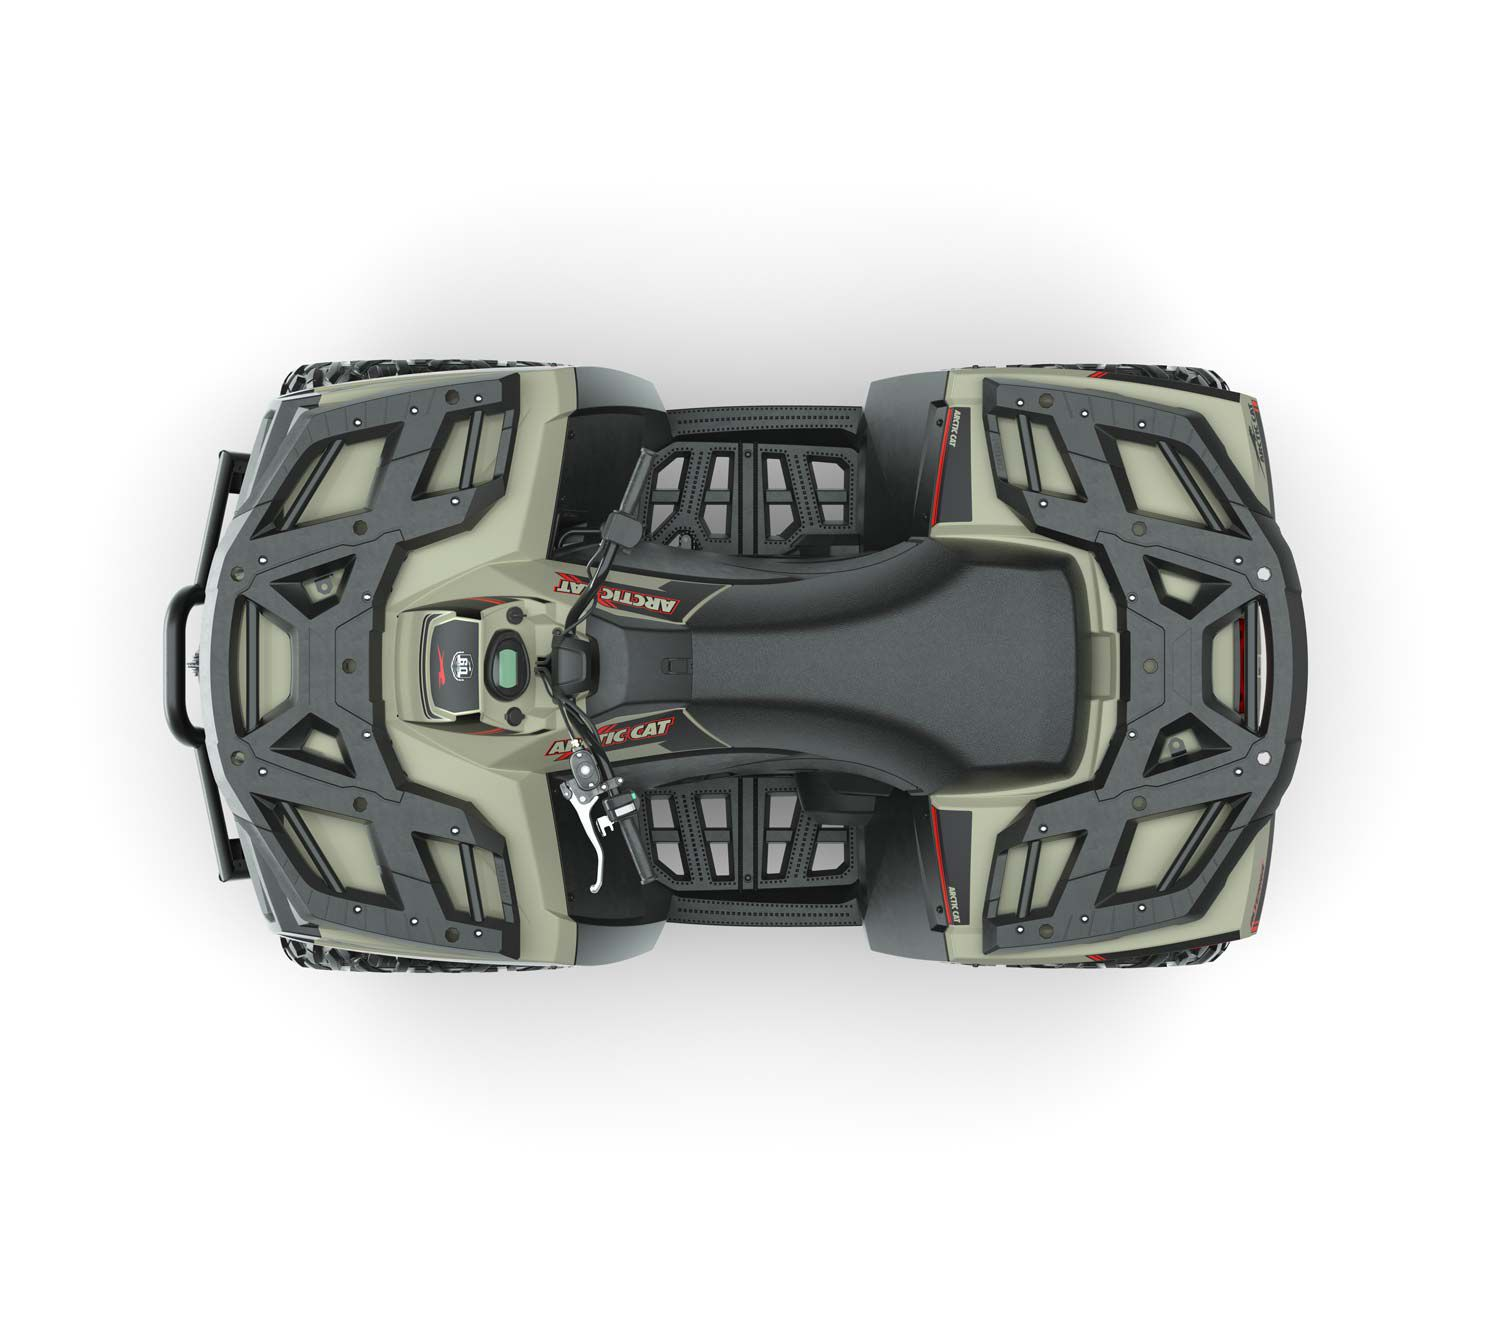 Rider comfort is an Arctic Cat priority with wide floorboards and a seat that's narrow between the knees.